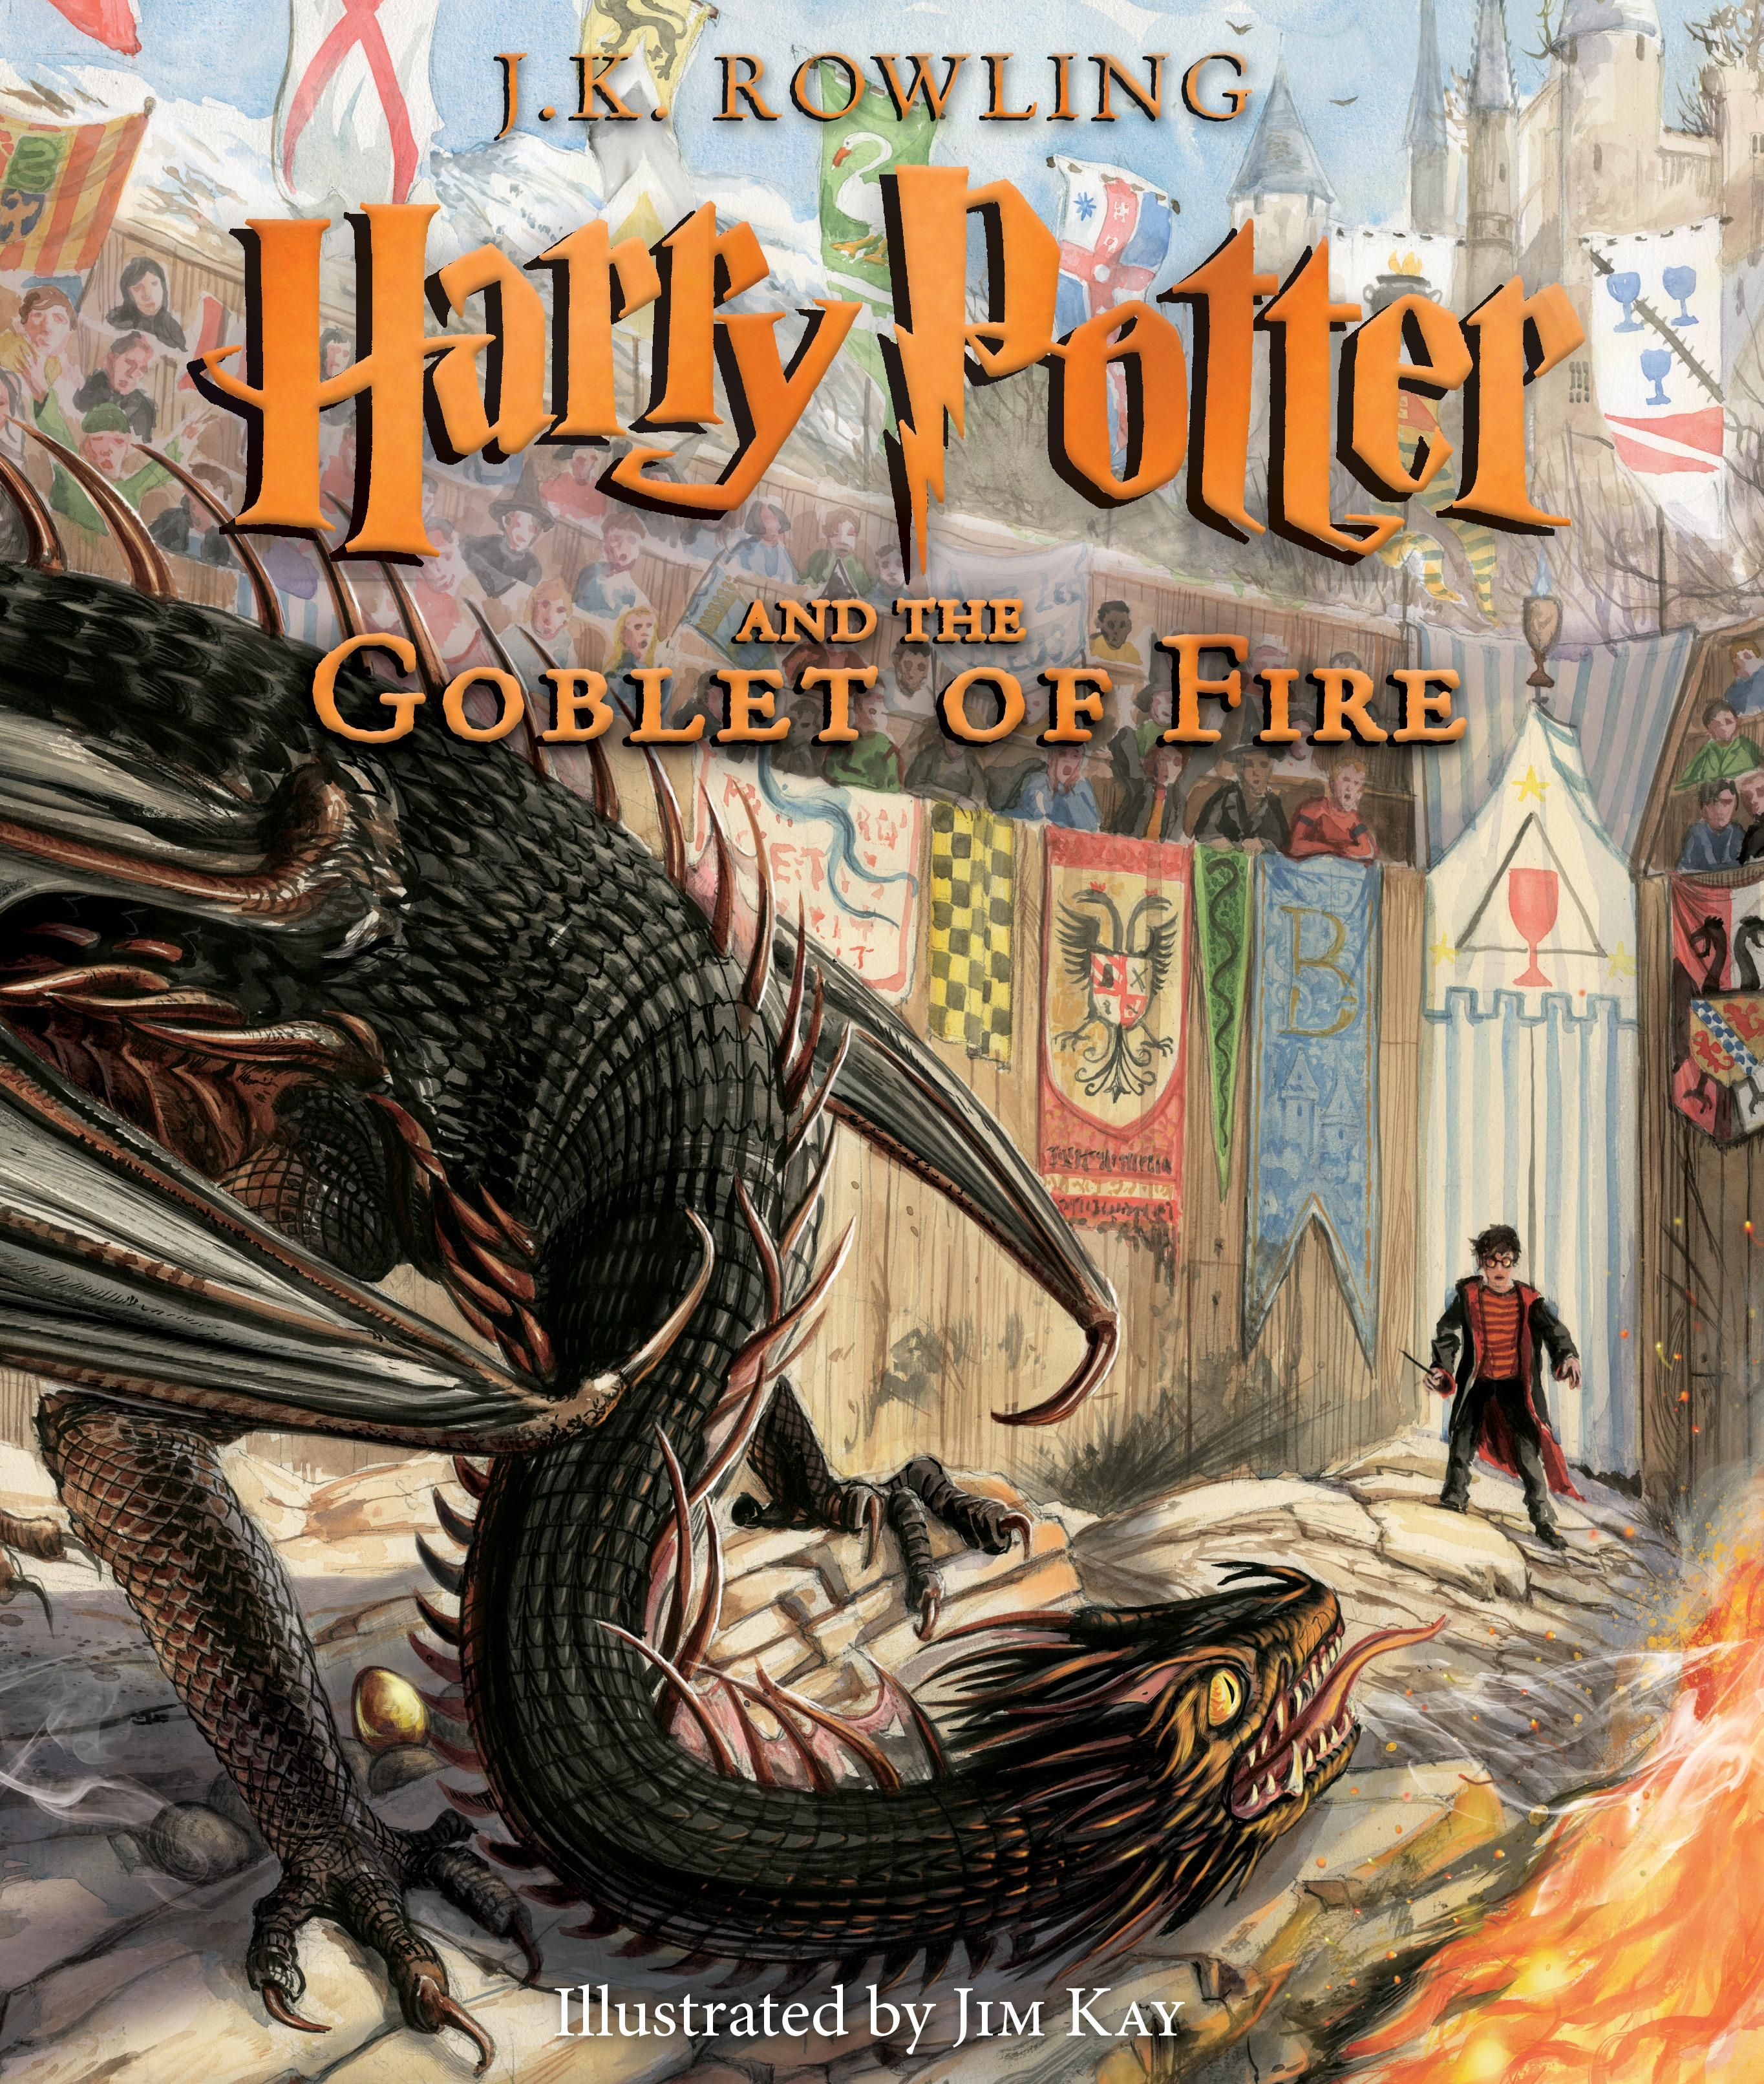 See New Harry Potter 20th Anniversary Book Covers Illustrated By Brian Selznick Harry Potter Book Covers Harry Potter Goblet New Harry Potter Book